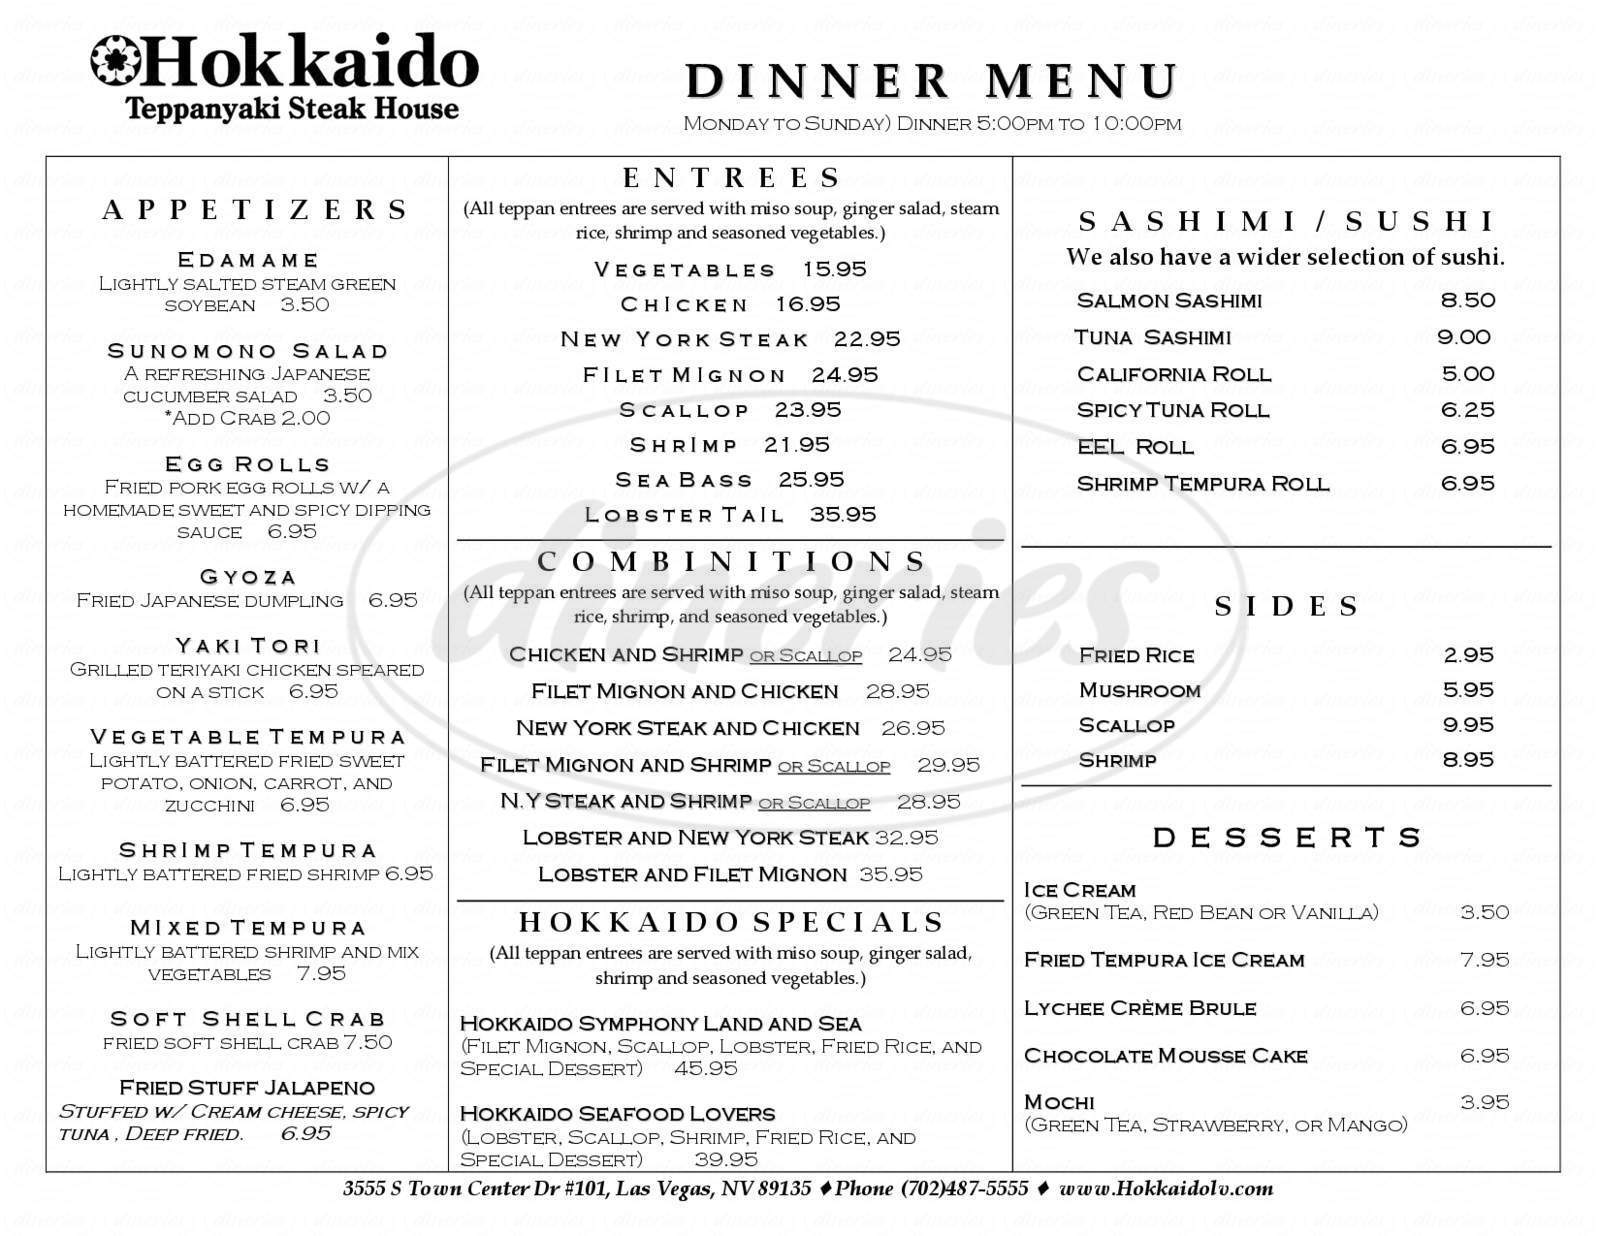 menu for Hokkaido Teppanyaki Steak House